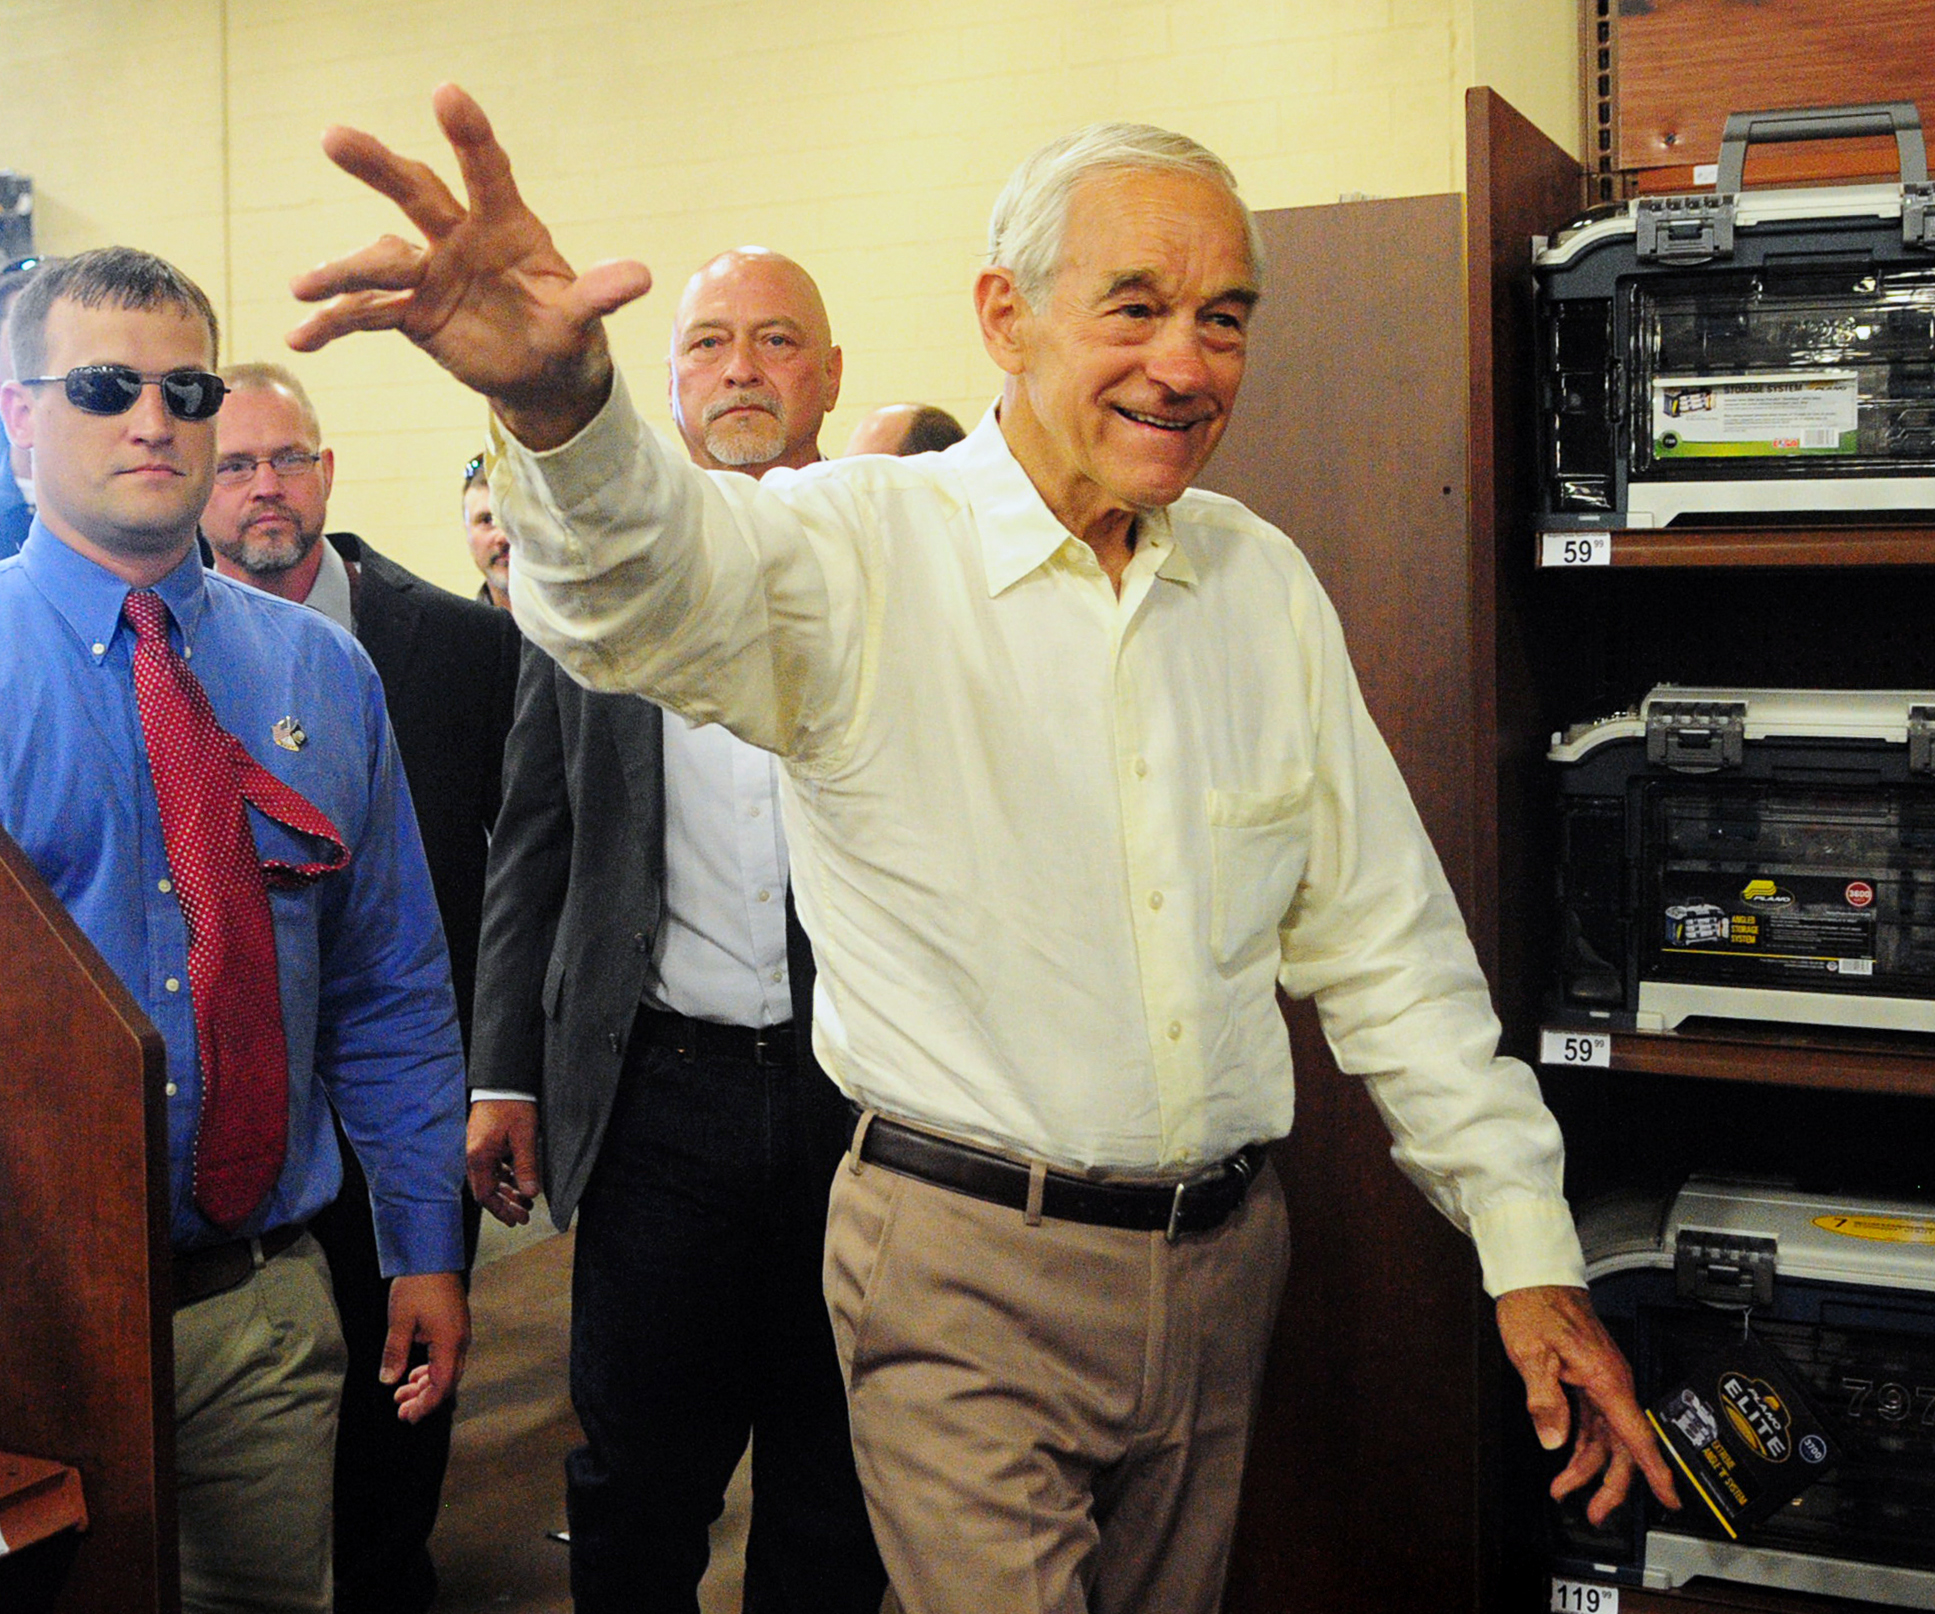 Former U.S. Rep. and presidential candidate Ron Paul waves to supporters before speaking at a campaign rally for U.S. Senate candidate Chris McDaniel, Saturday, June 14, 2014, at Gander Mountain in Hattiesburg, Miss.